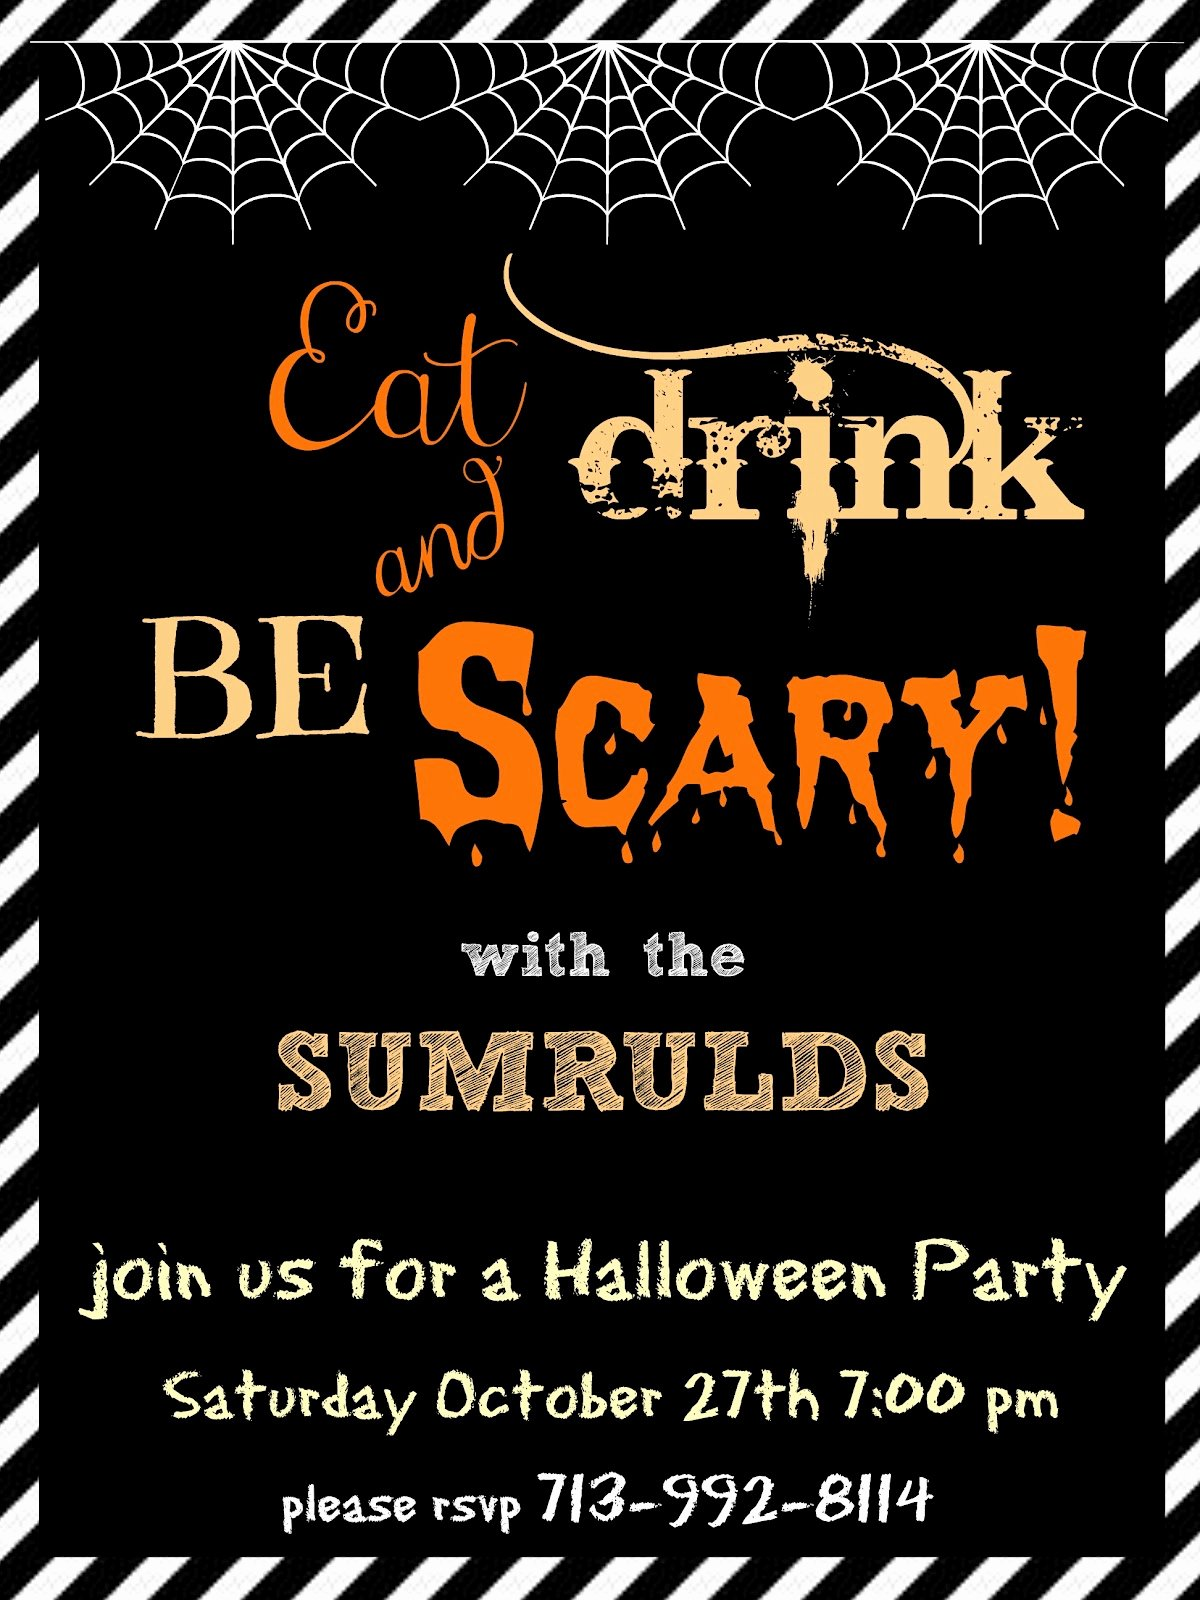 Halloween Party Invitations Template Elegant Crafty In Crosby Halloween Party Invitations Please